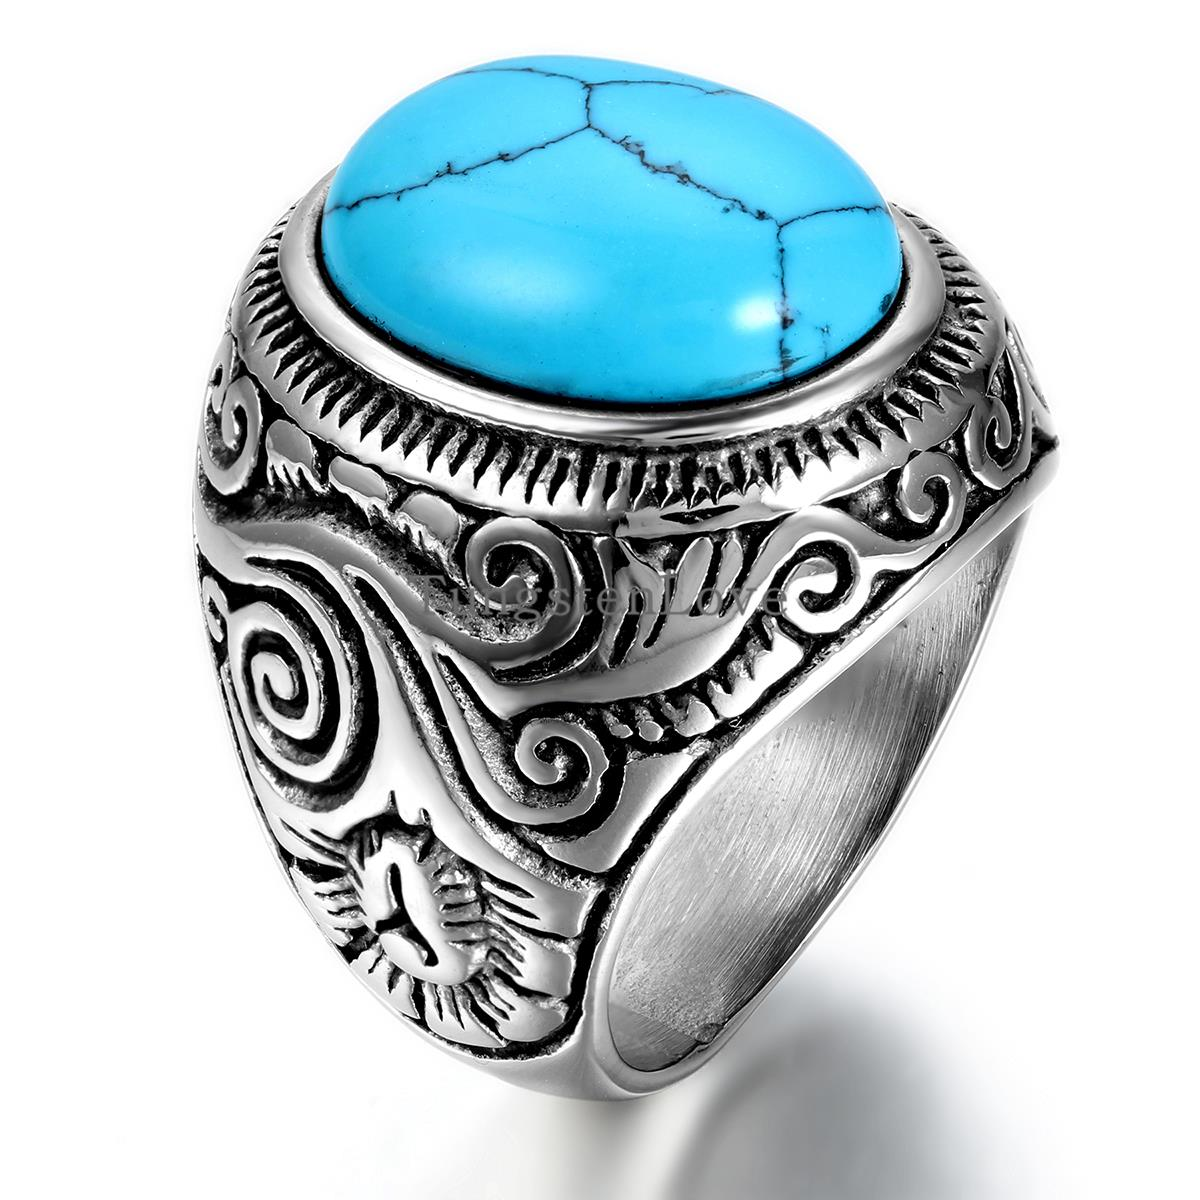 Vintage Classic Retro Men's Fake Turquoise Ring Mens Jewelry Stainless  Steel Rings, Blue Silver Color